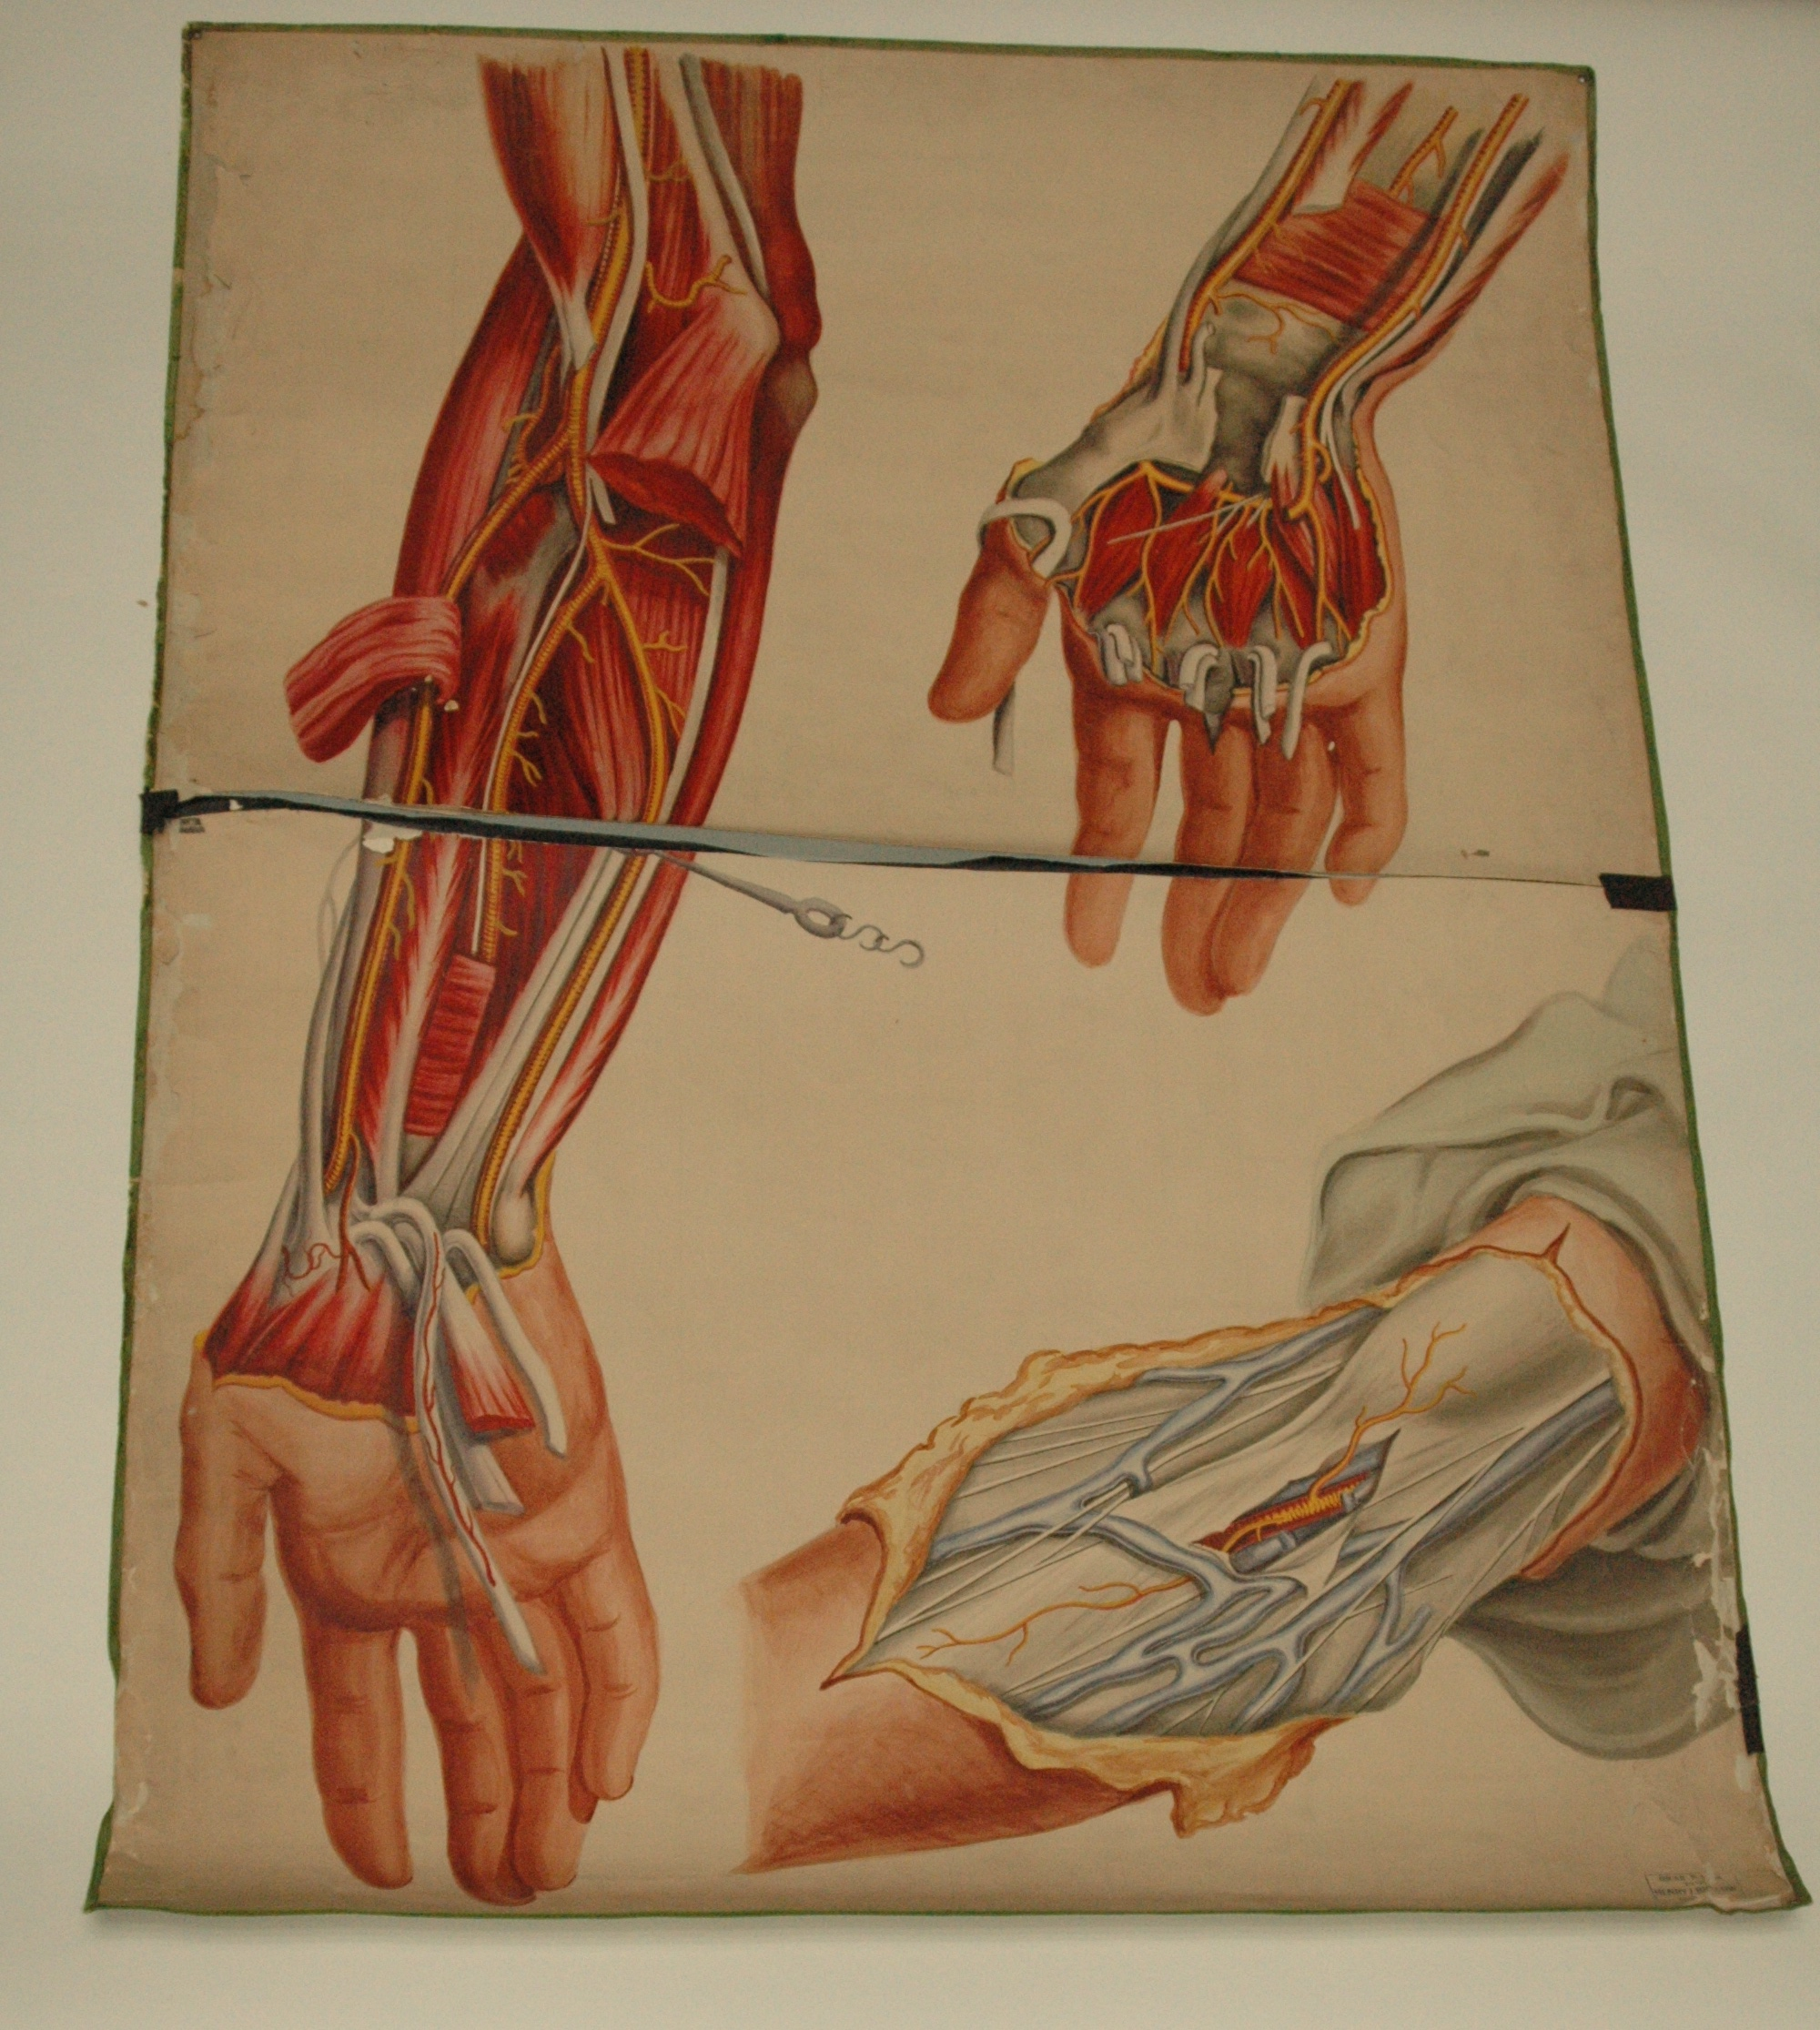 Teaching Watercolor Of Arteries Of The Arm And Hand After Richard